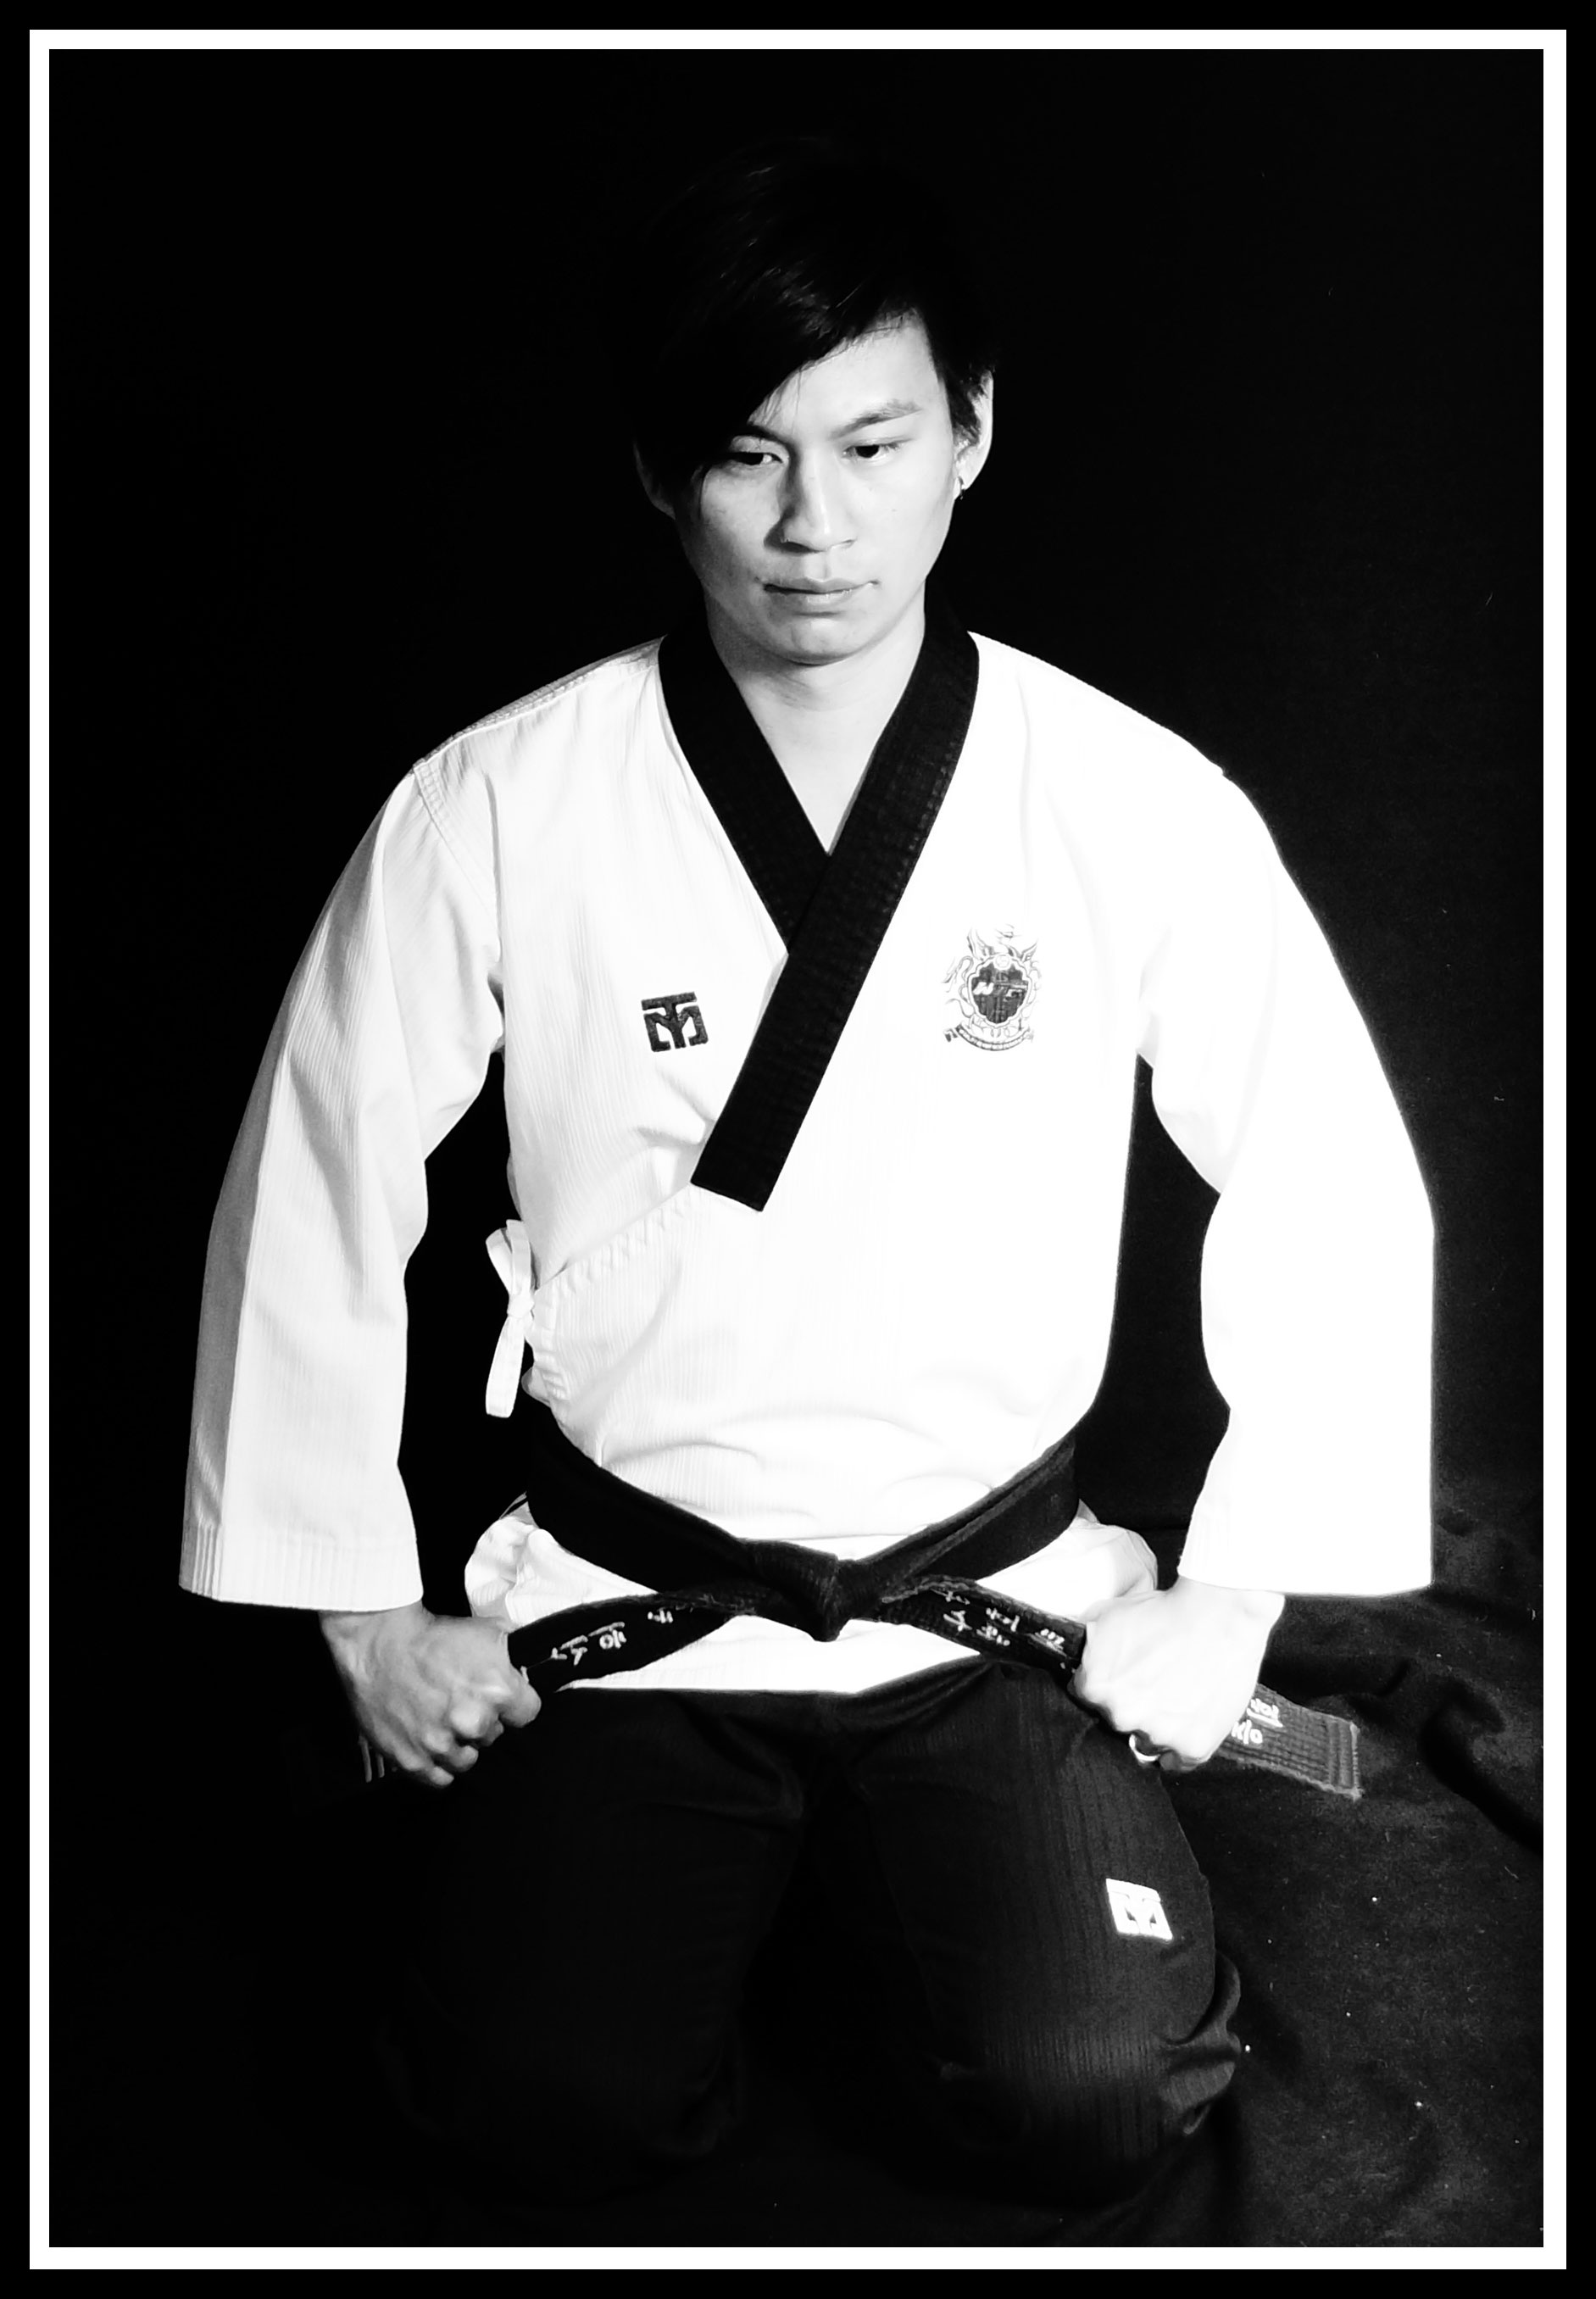 Master Hsin - Owner and head martial arts instructor